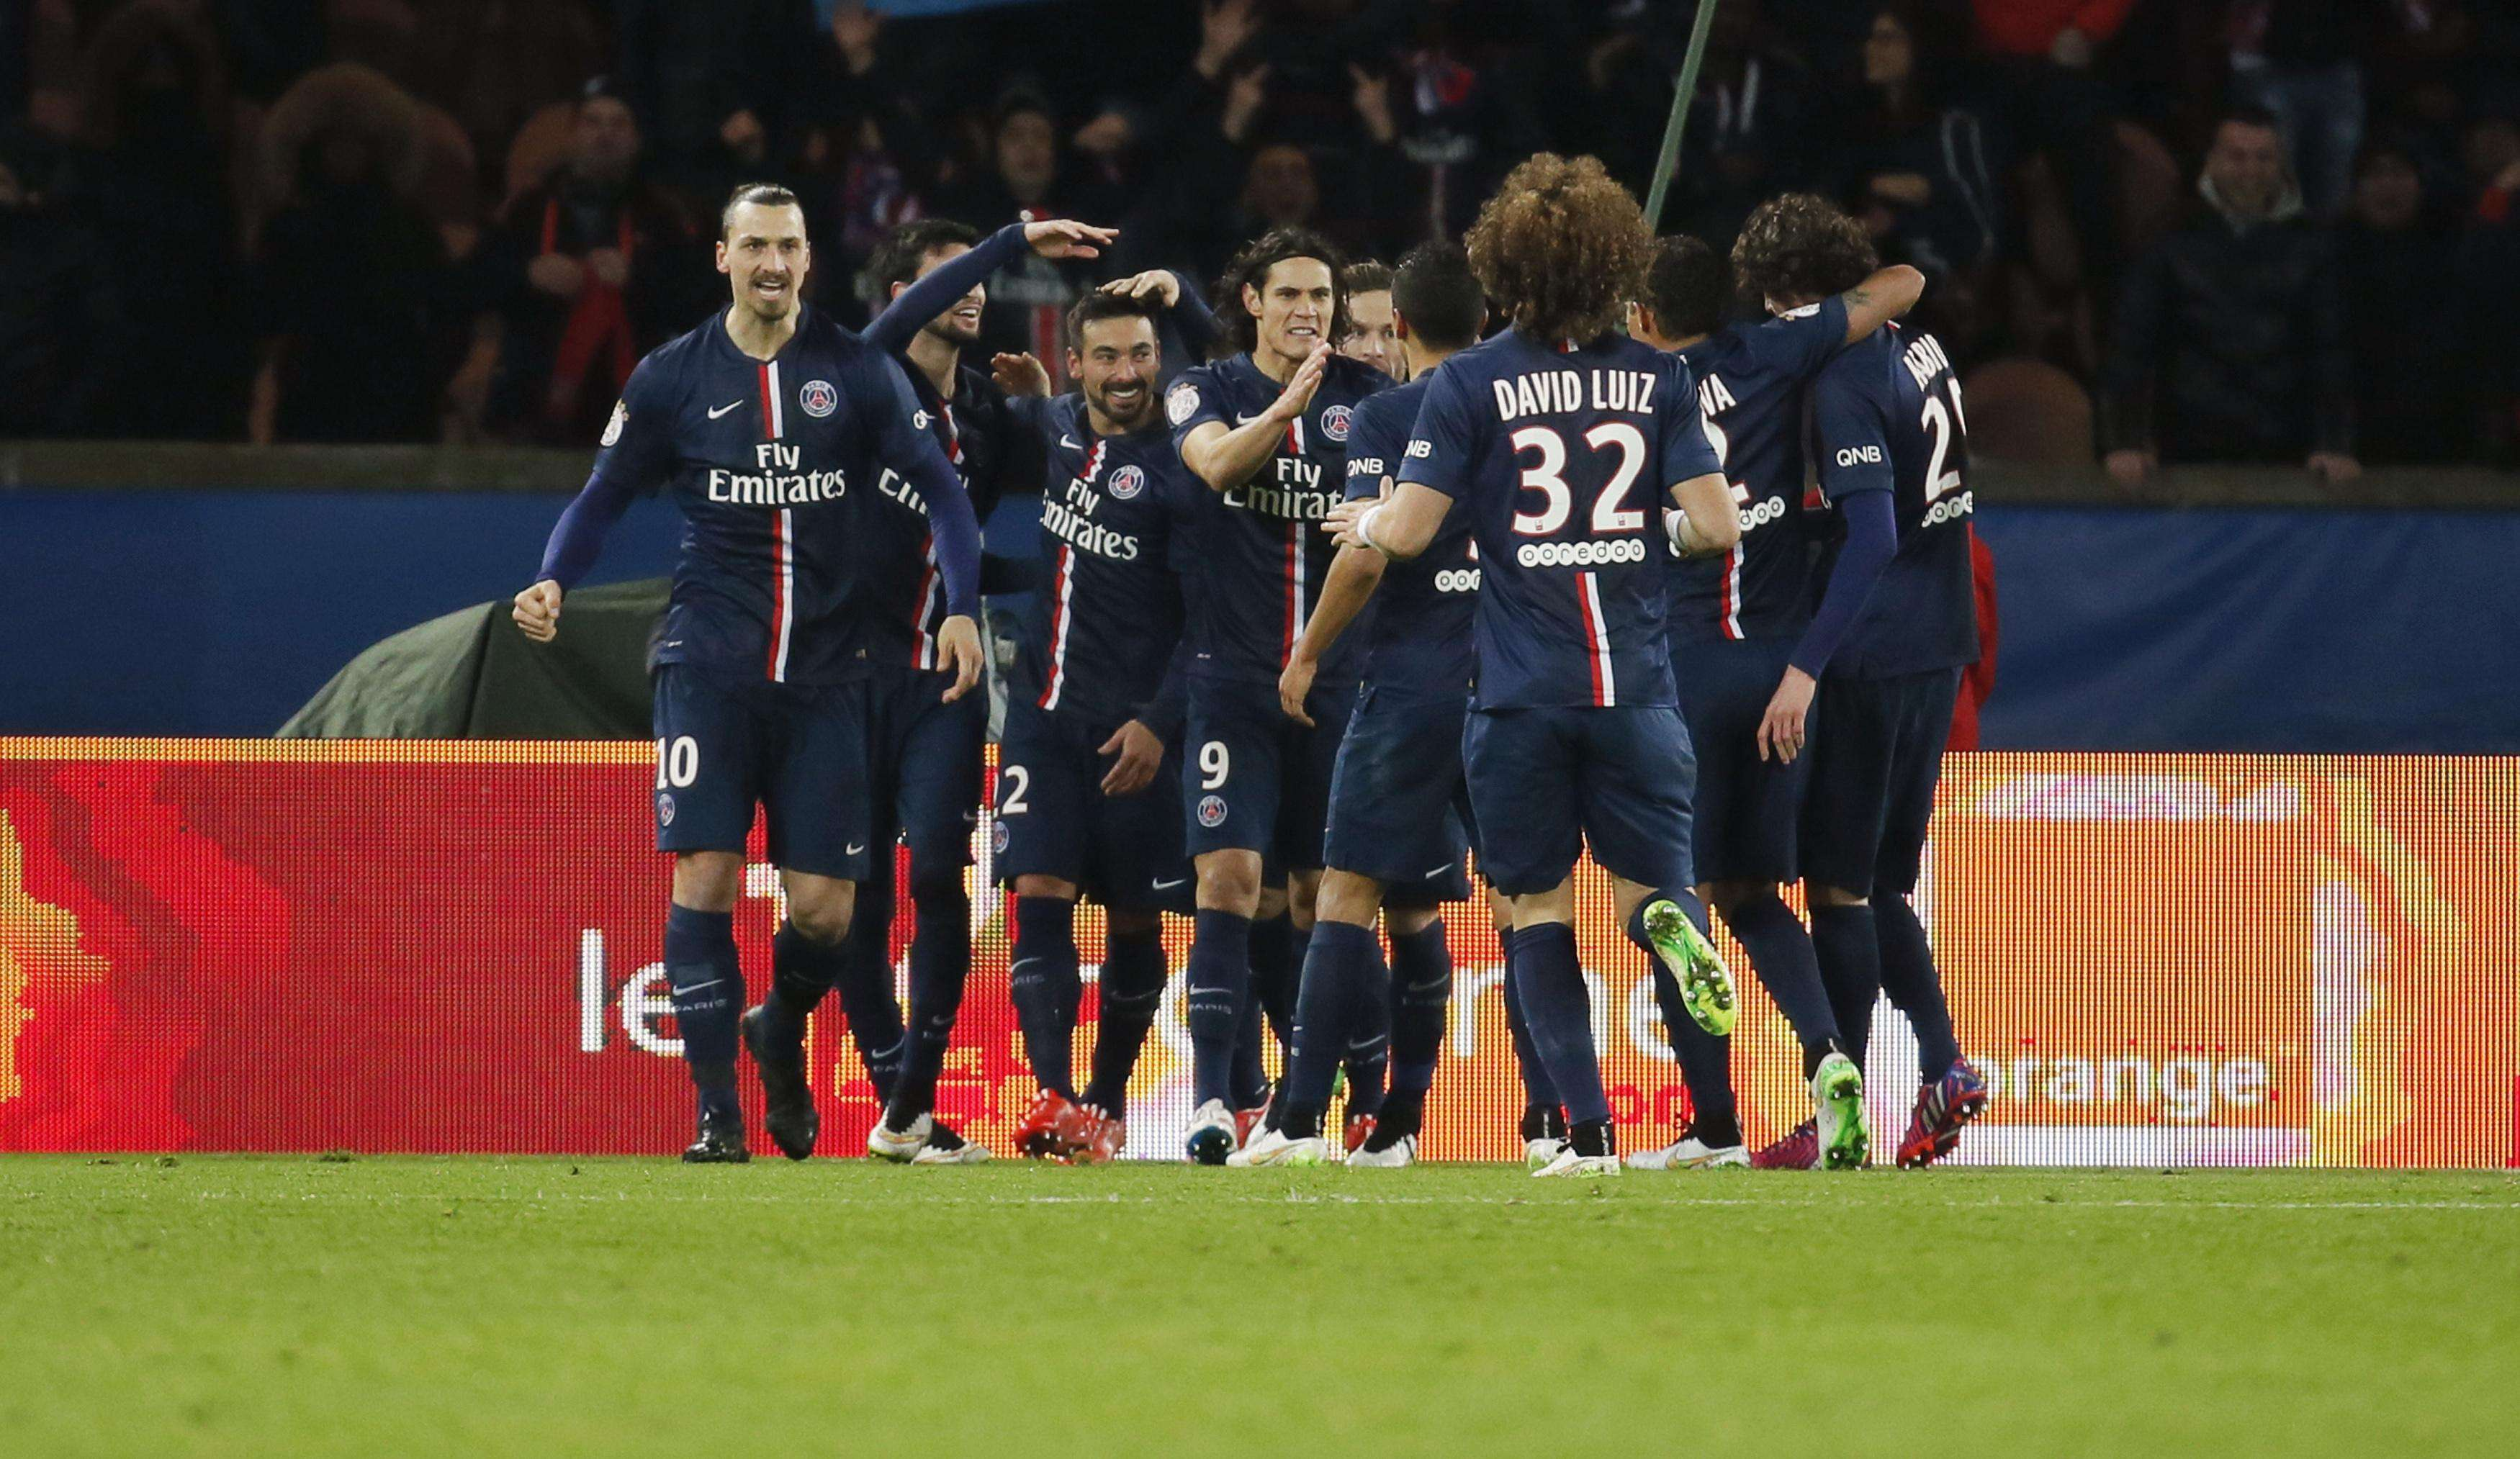 Paris St Germain's Ezequiel Lavezzi (3rd L) celebrates with team mates after scoring during their French Ligue 1 soccer match against Stade Rennes at Parc des Princes stadium in Paris January 30, 2015. REUTERS/Gonzalo Fuentes (FRANCE - Tags: SPORT SOCCER) Foto: GONZALO FUENTES/REUTERS